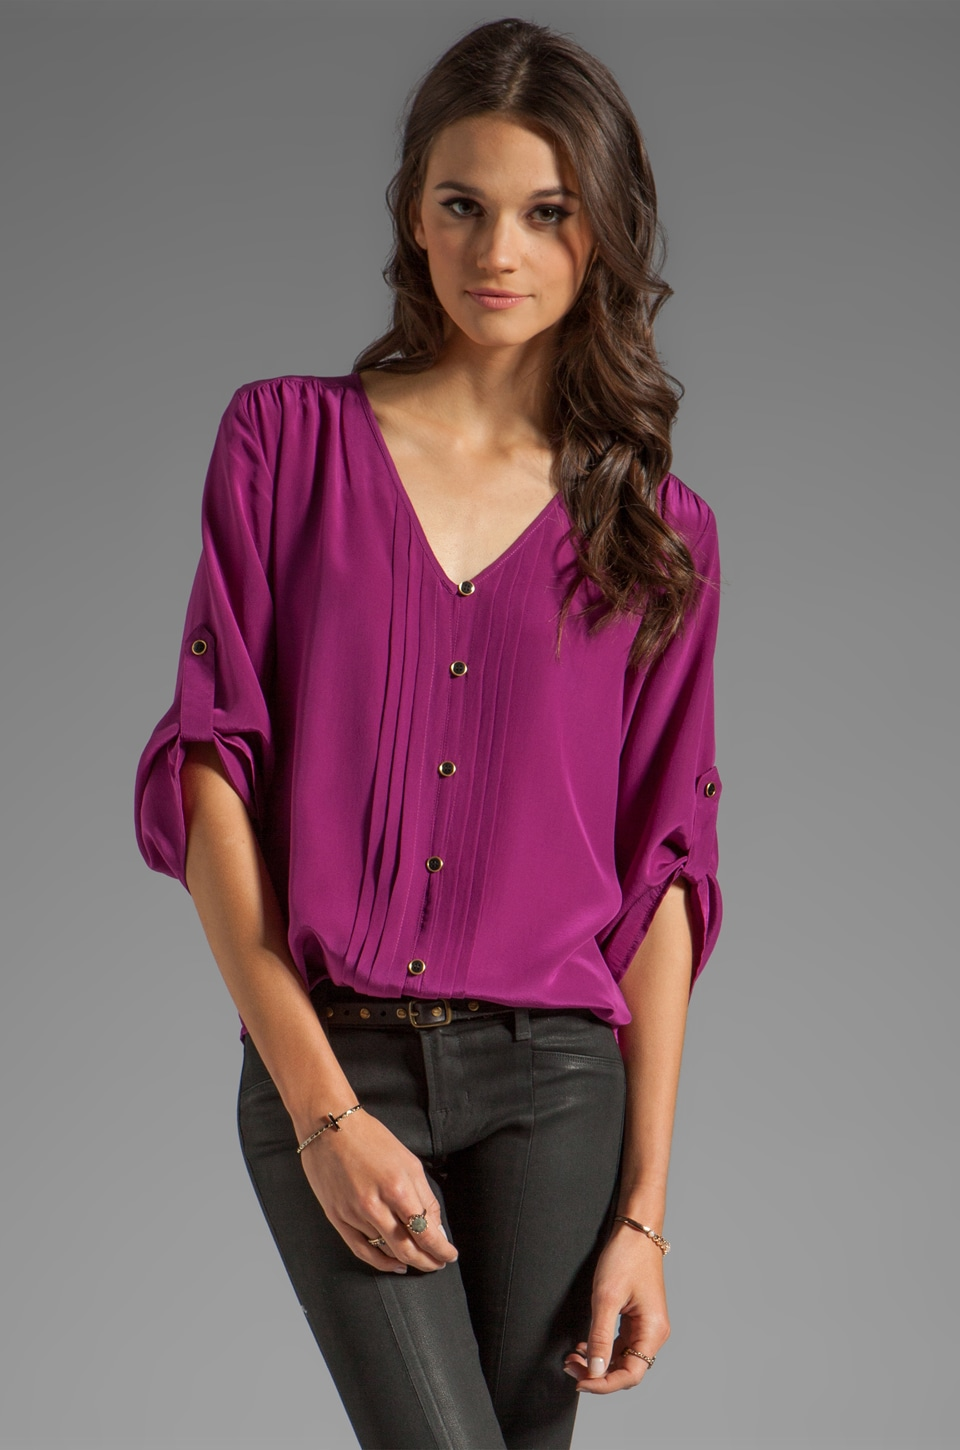 Yumi Kim Lizzie Top in Wine